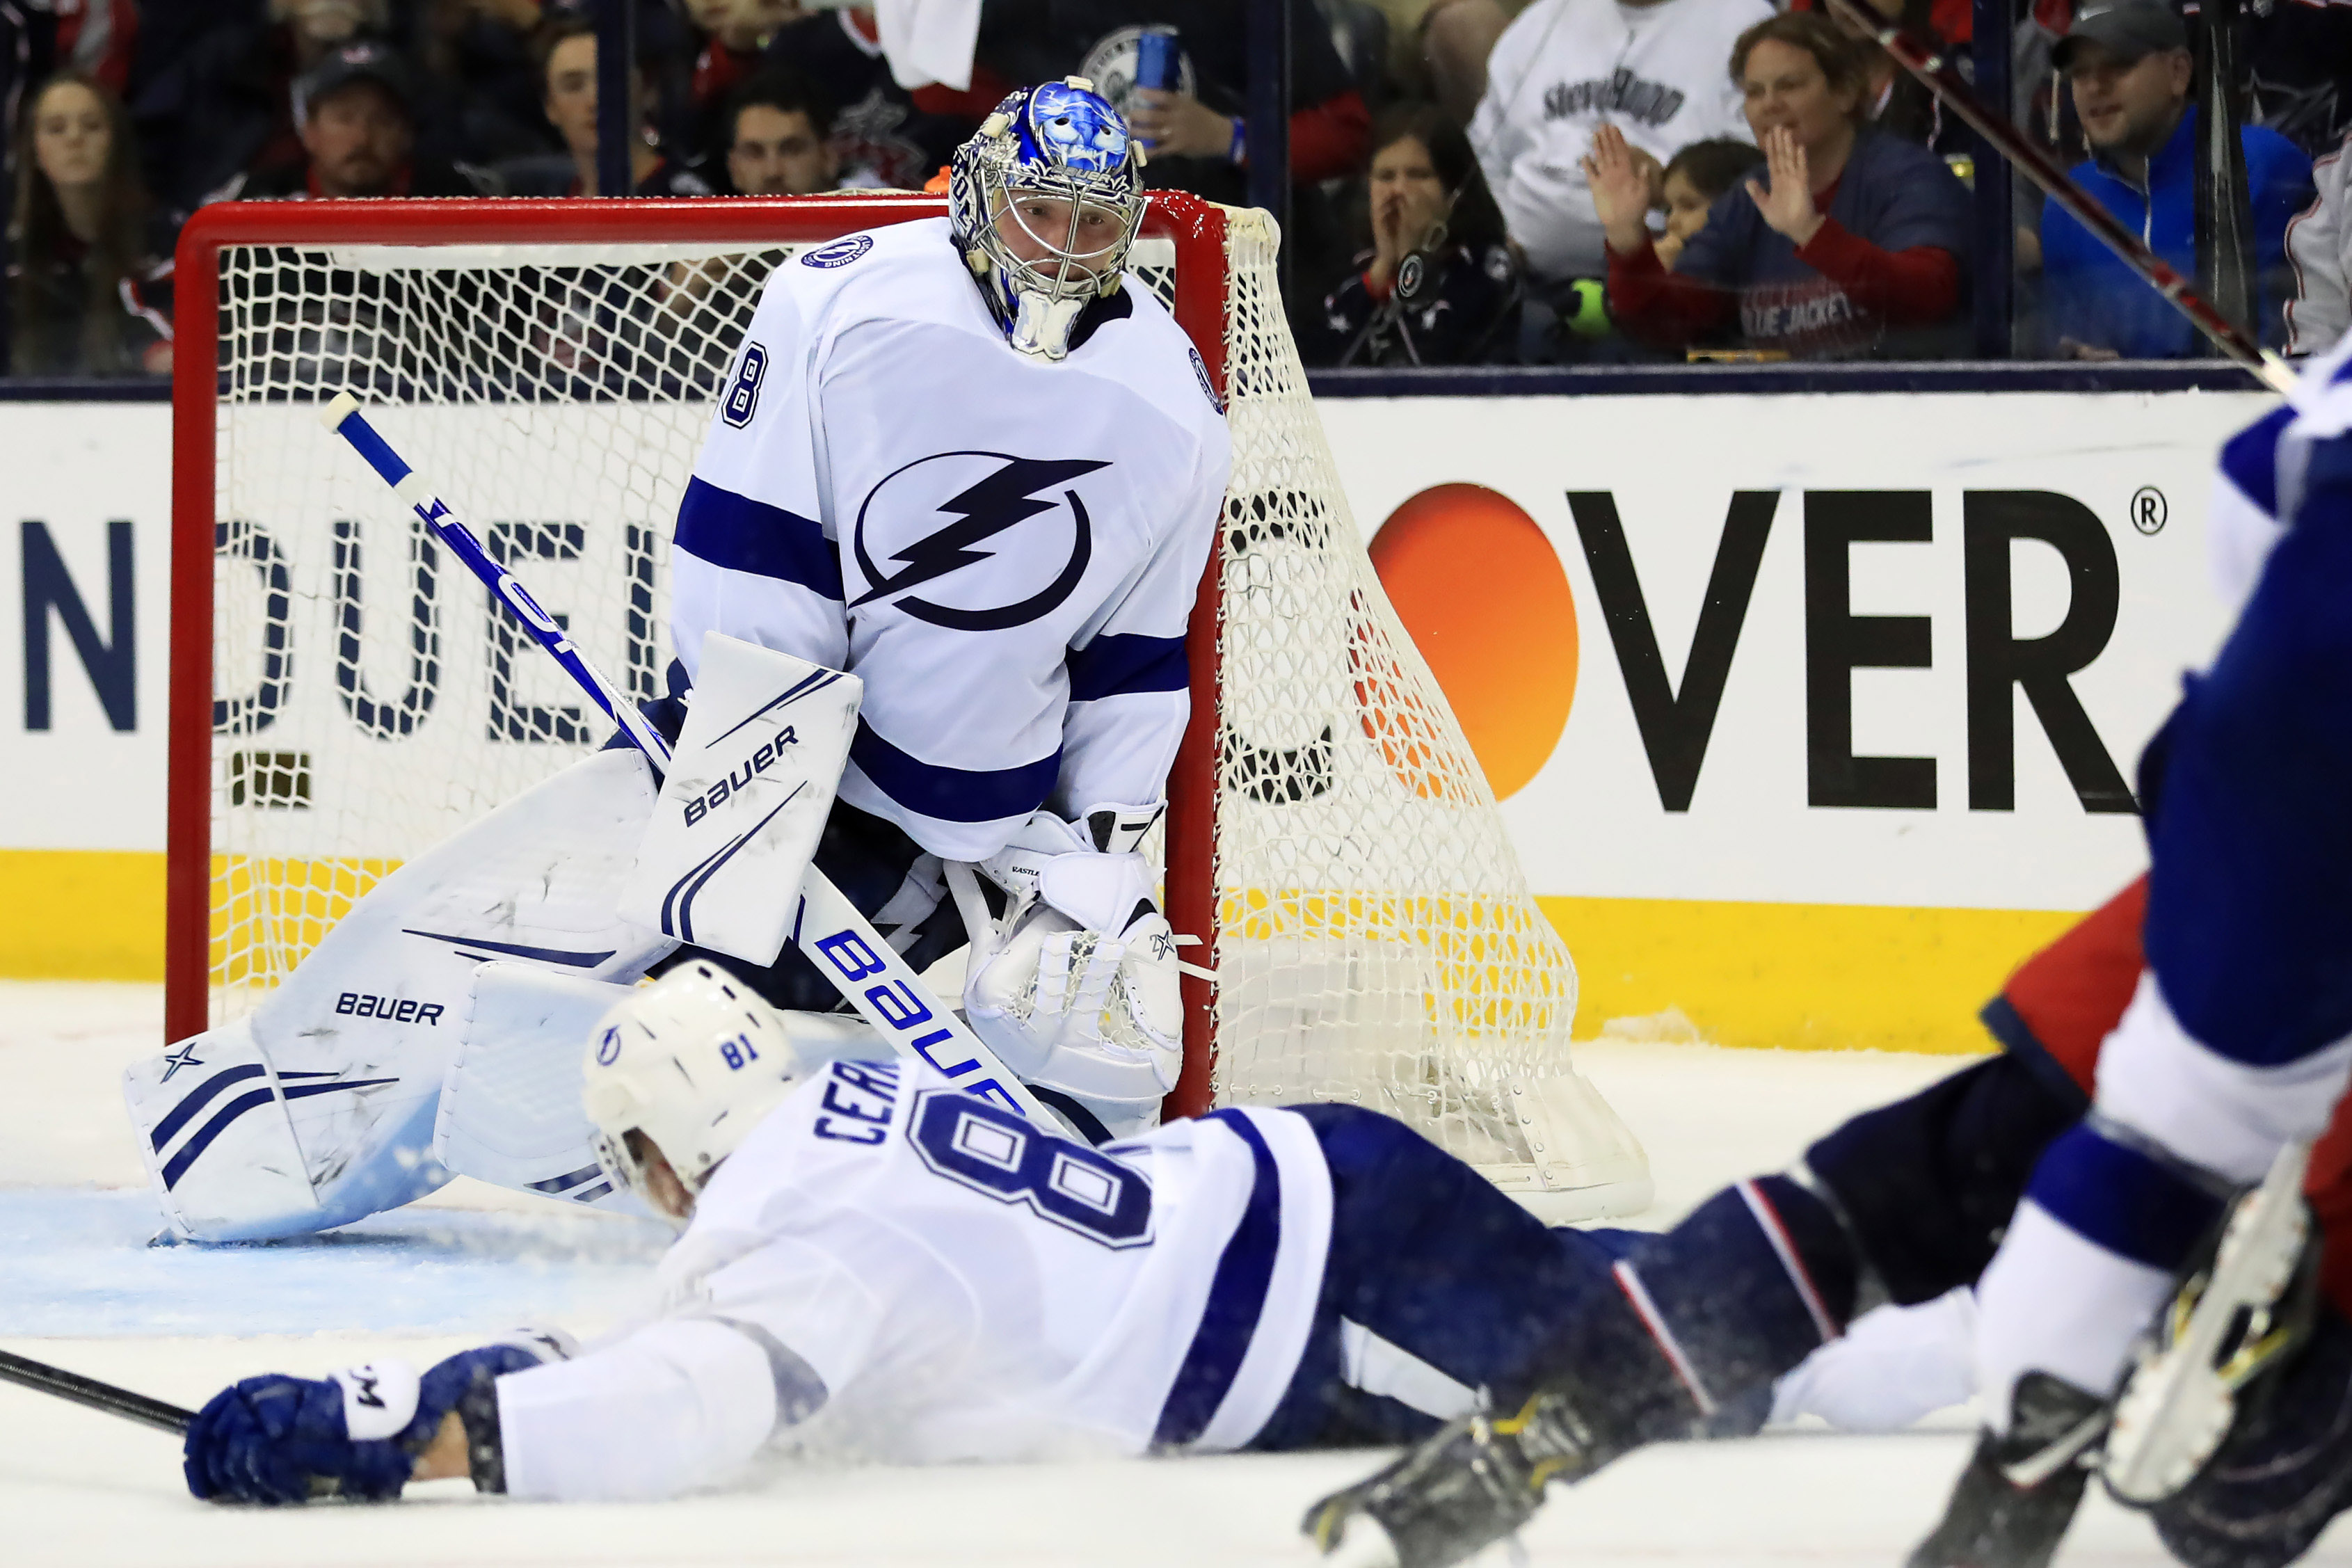 timeless design efdff 235b7 The Tampa Bay Lightning are on the brink of a historic ...